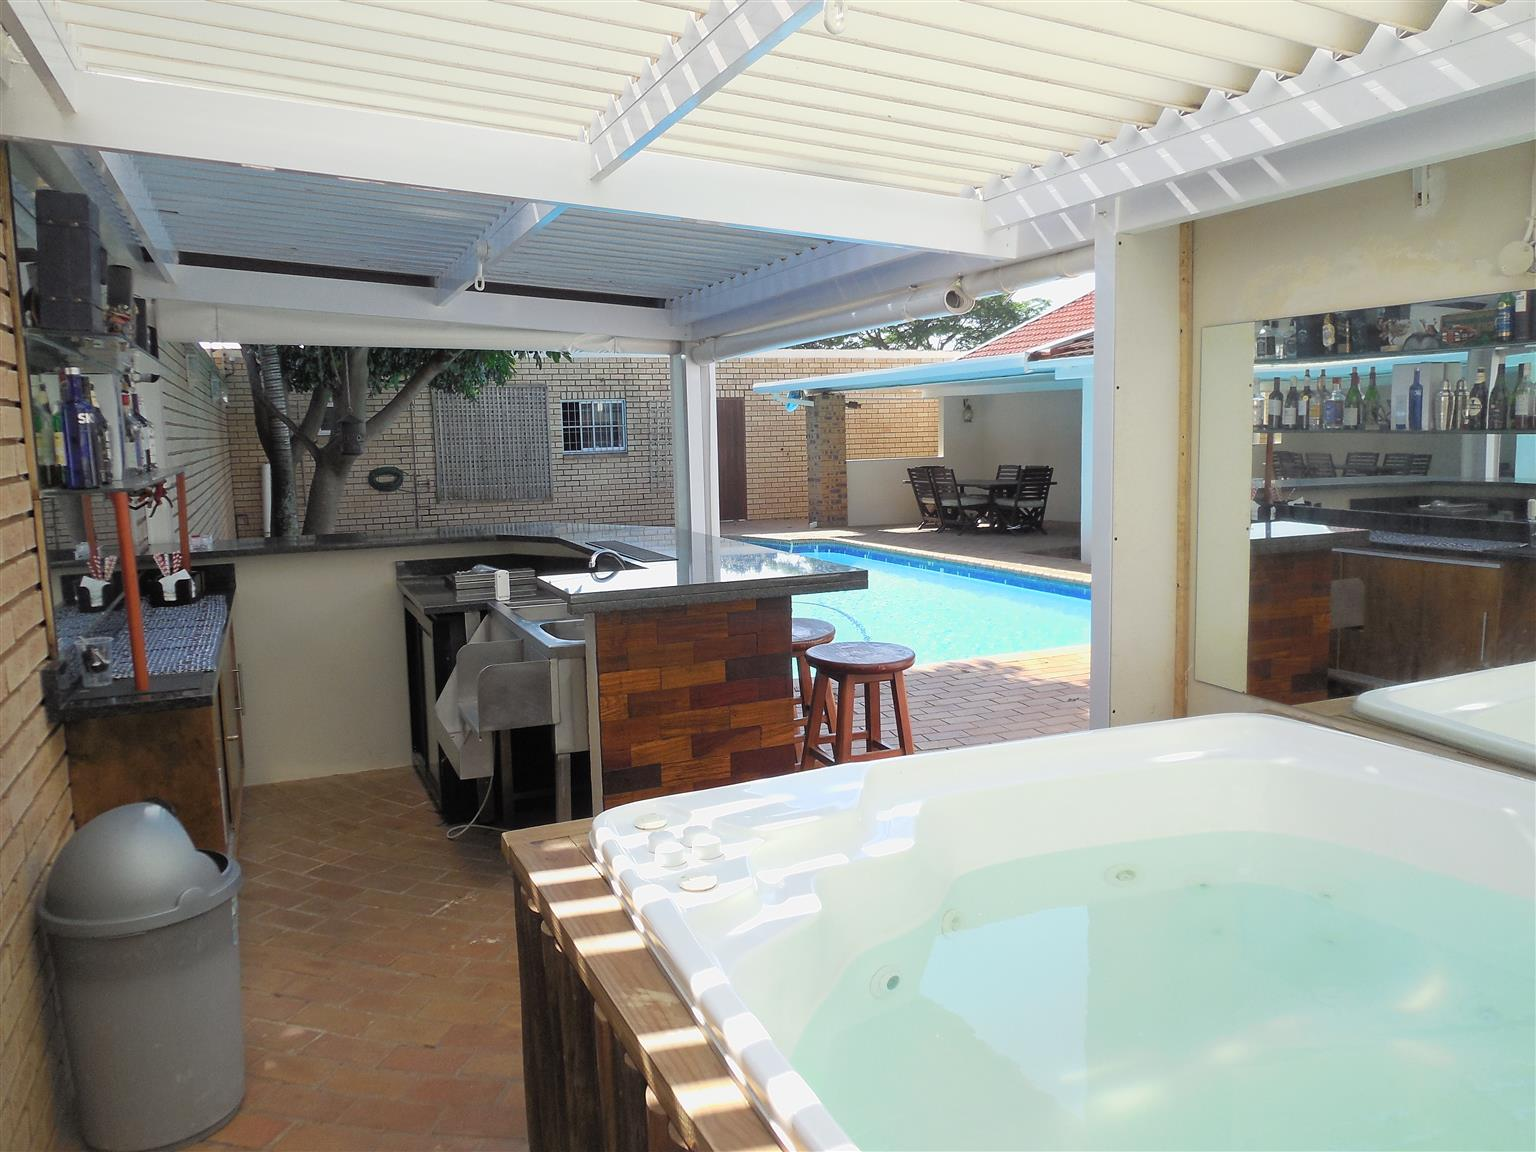 Accommodation with free WiFi, Air Conditioning, Pool, Bar and Jacuzzi